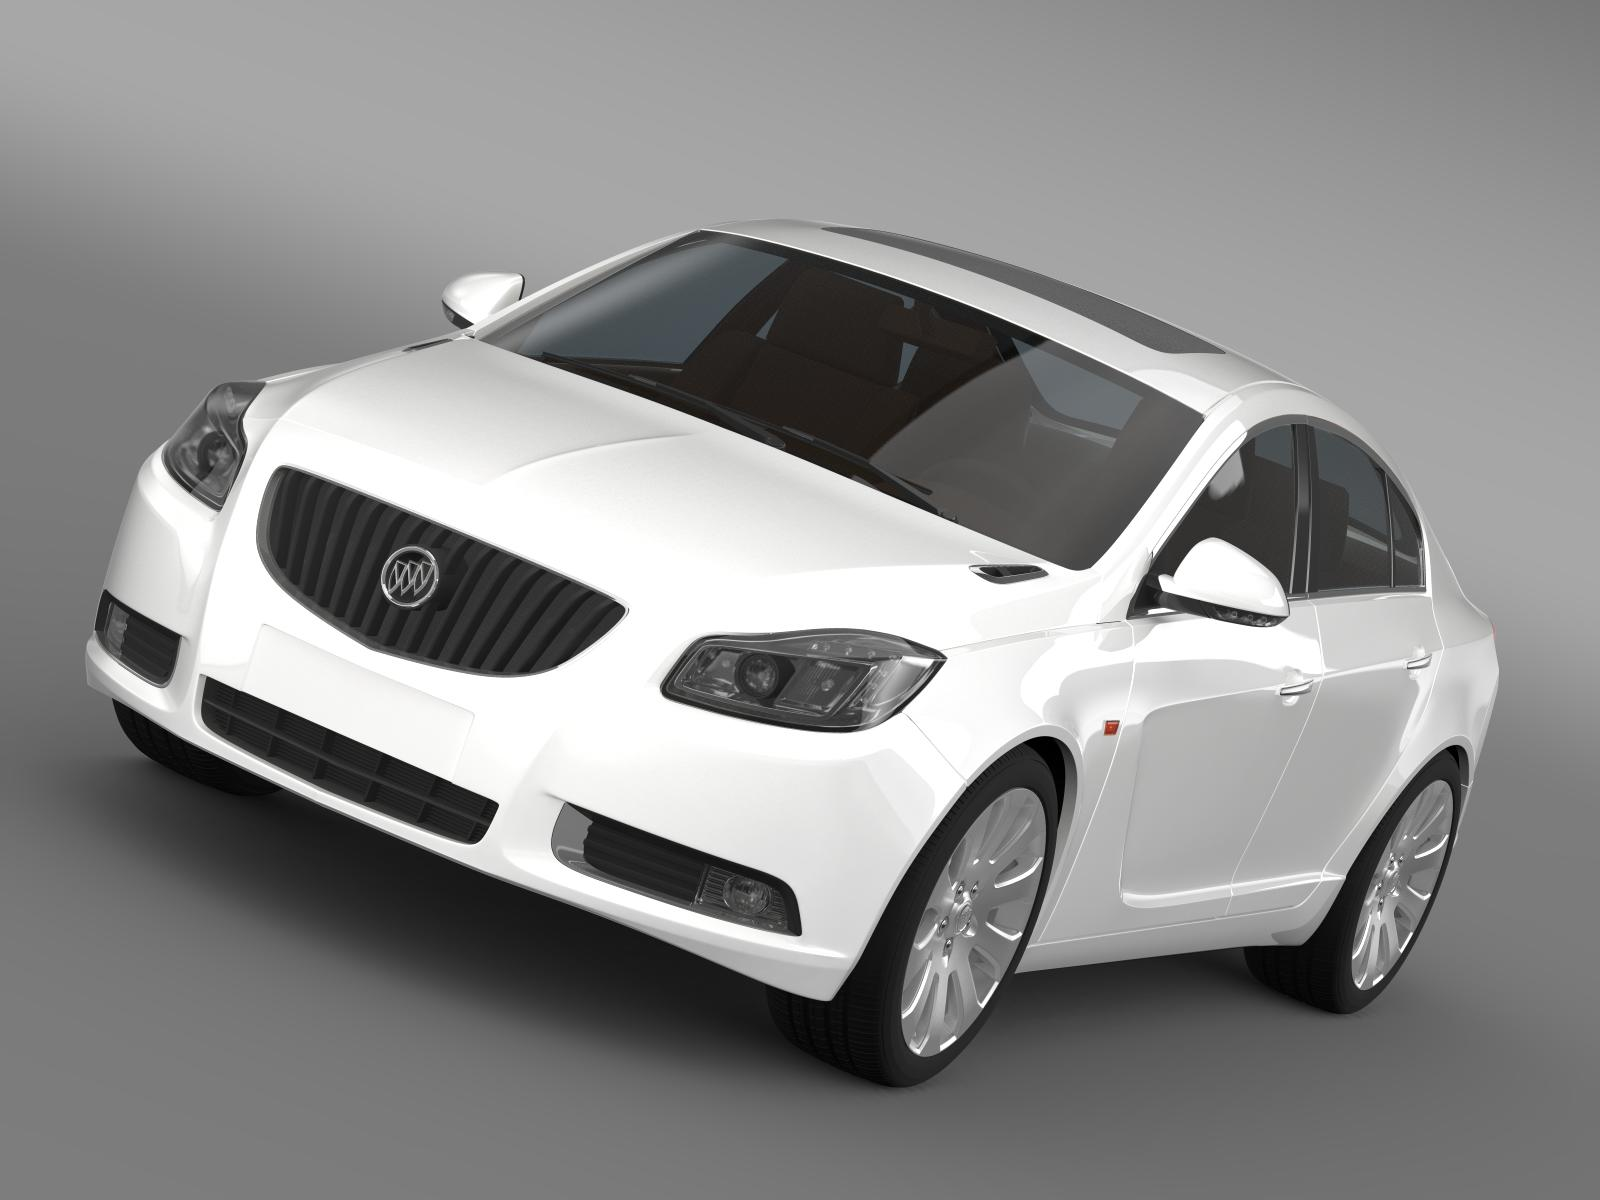 buick regal flexfuel 2011-2013 model 3d model 3ds max fbx c4d